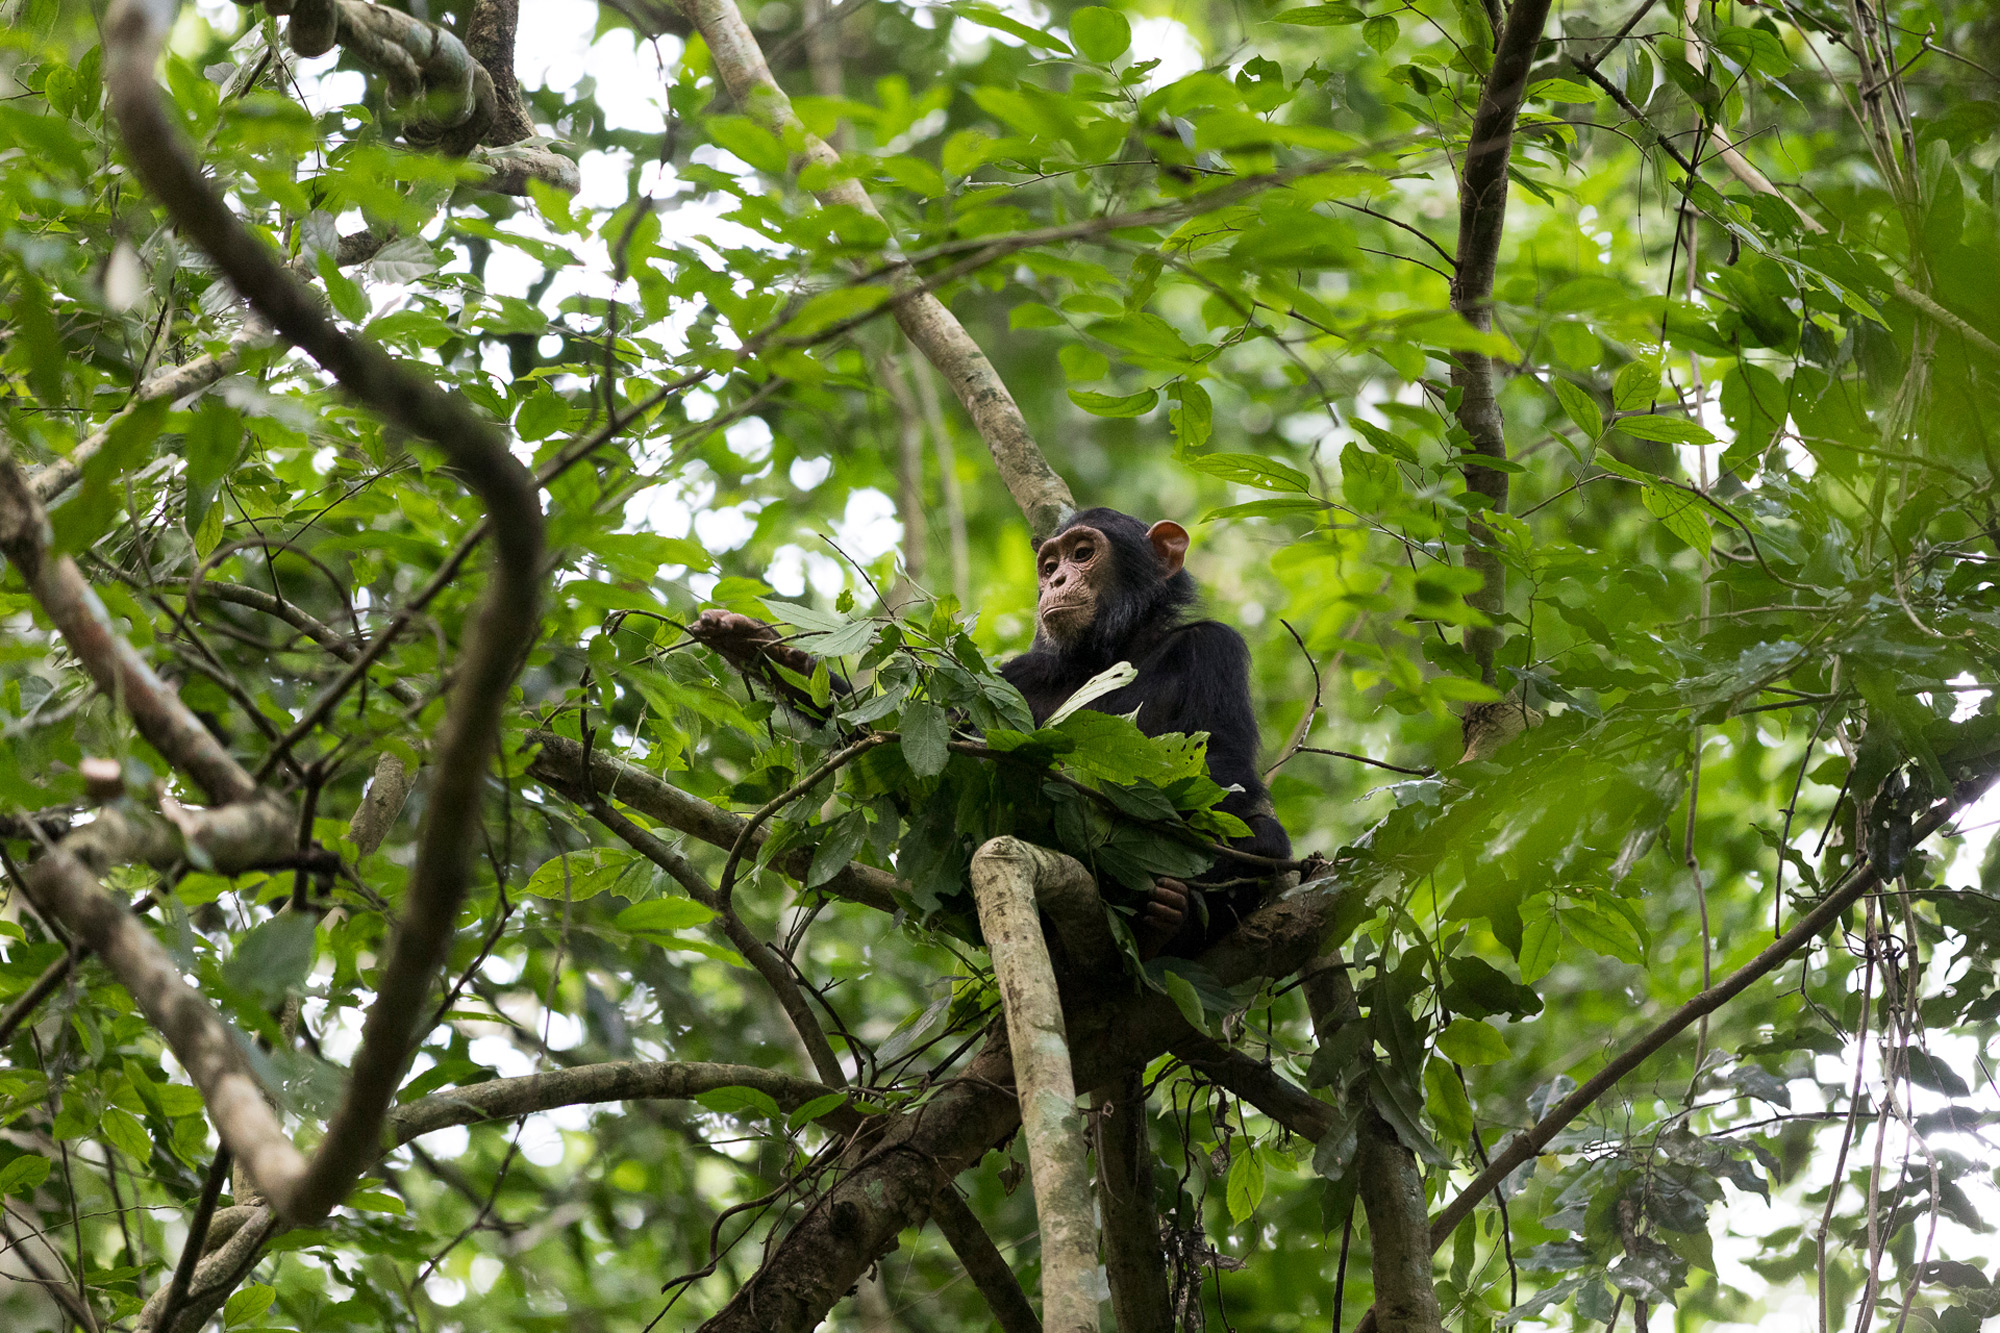 A young chimpanzee builds a nest for napping in Kibale National Park, Uganda © Patrice Quillard